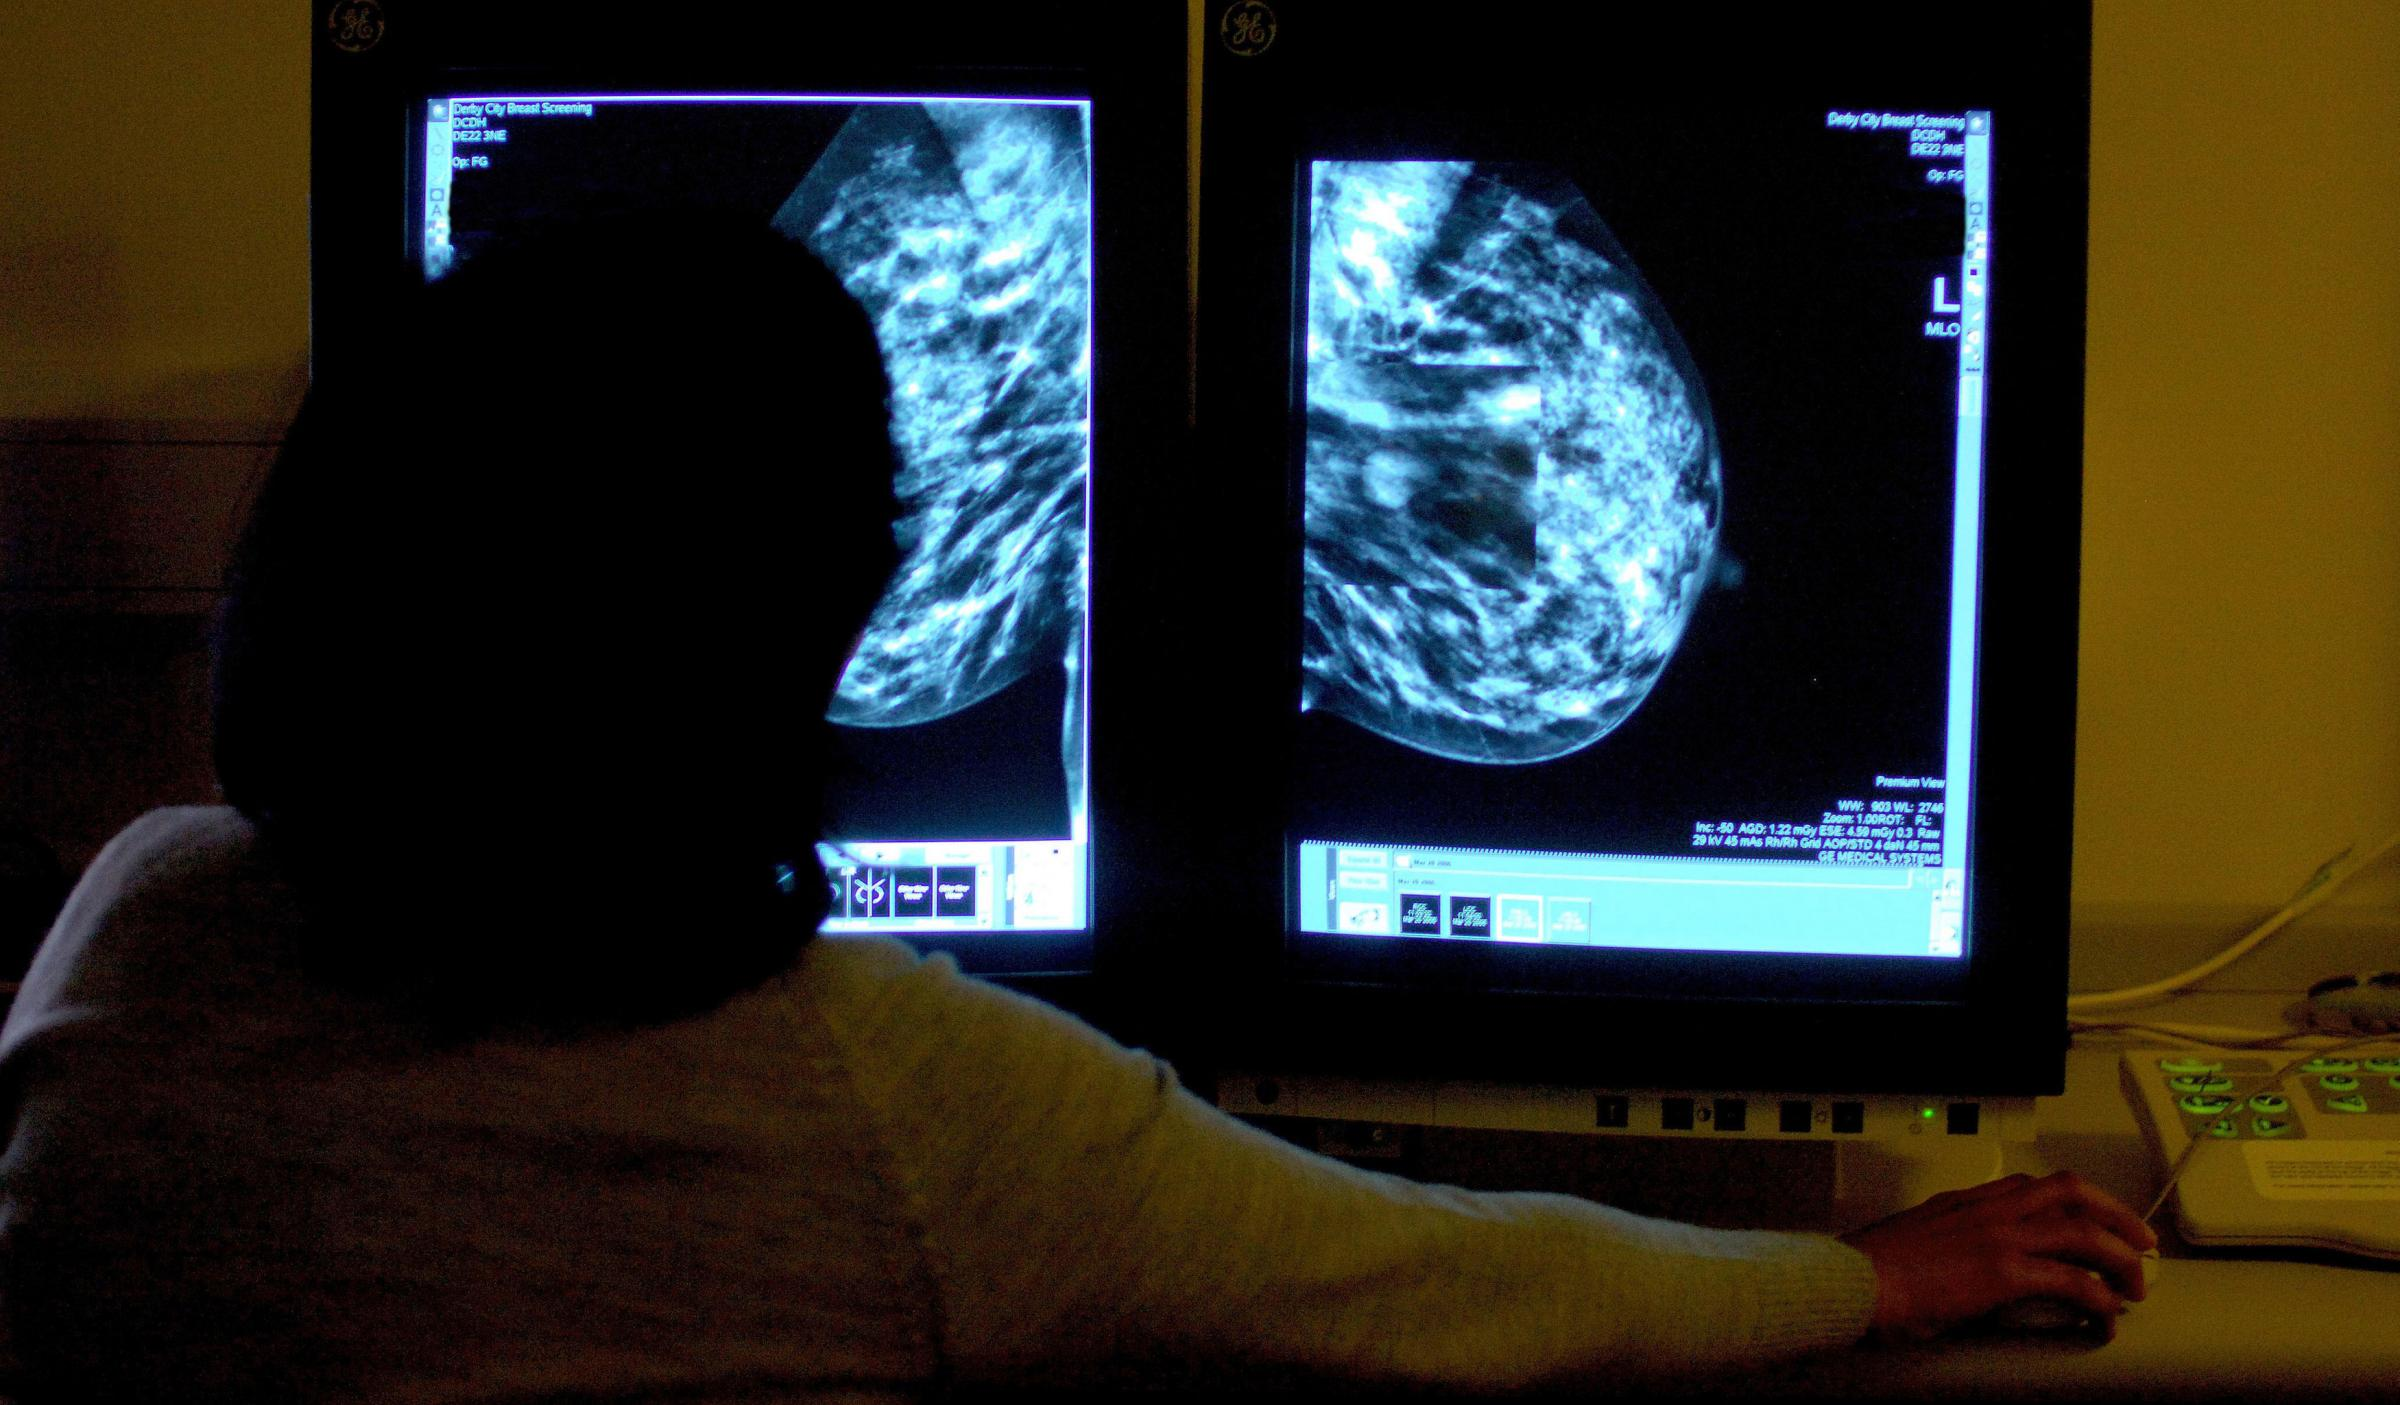 UK's NICE approves Roche's breast cancer drug Kadcyla for routine use